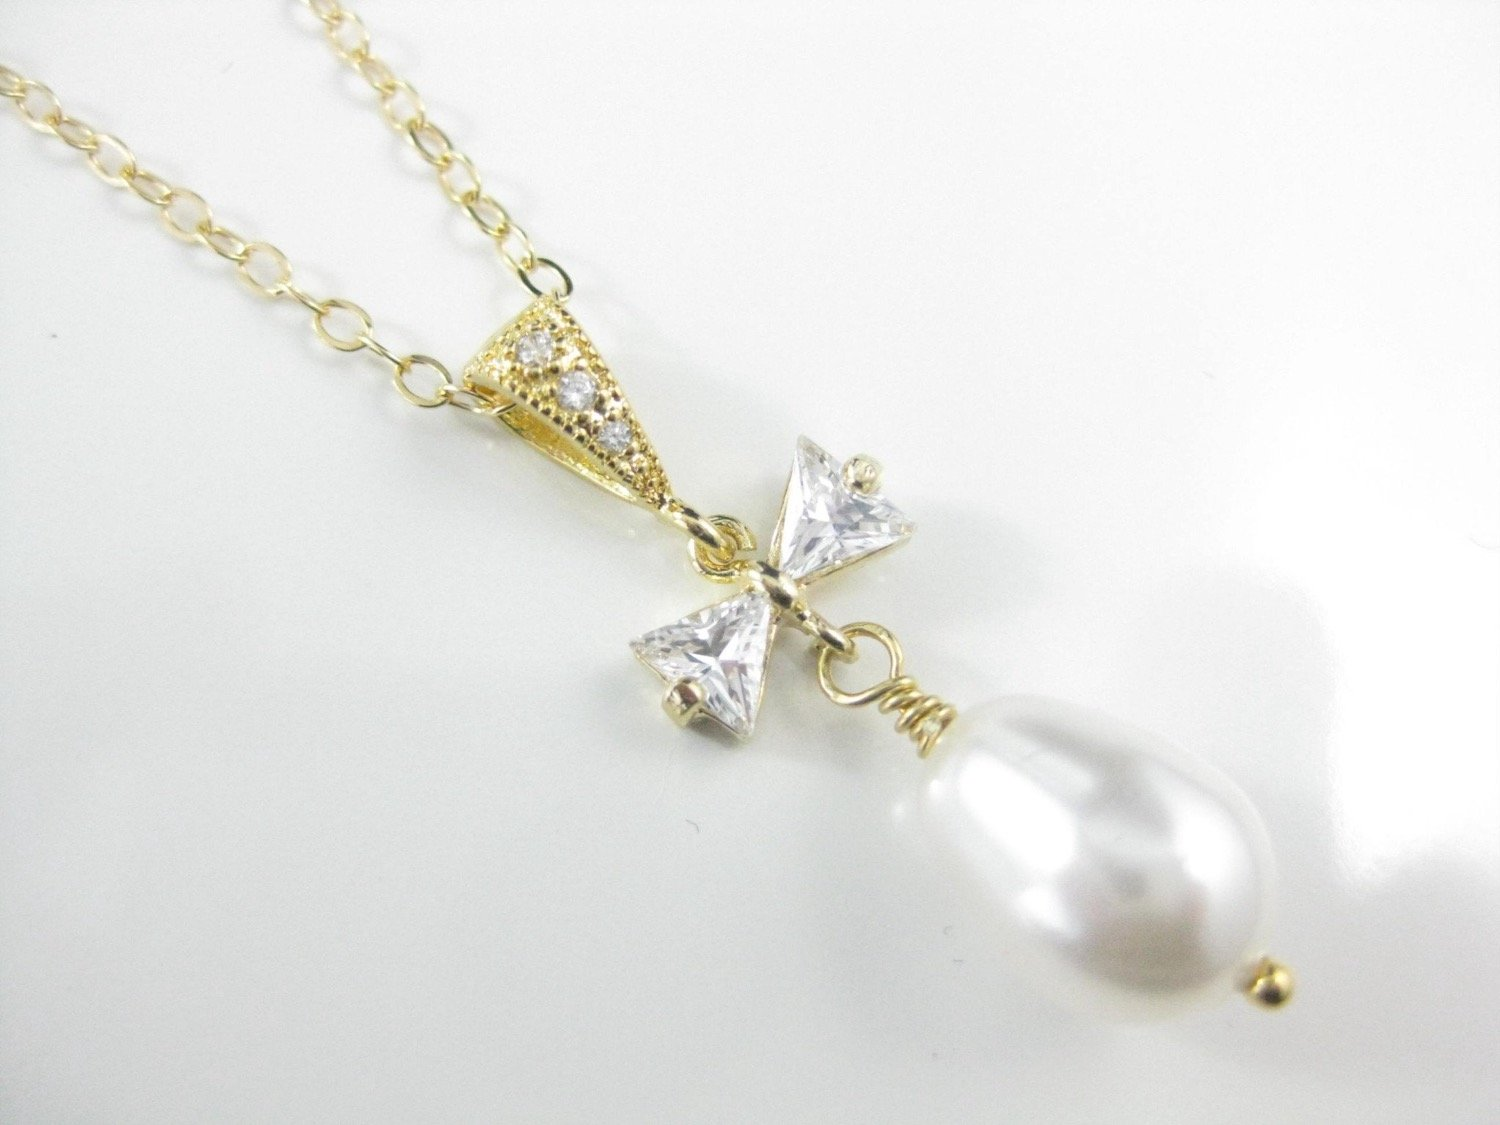 Bridal Jewelry White Pearl and Gold Necklace with Pearl Pendant - Clairesbridal - 4